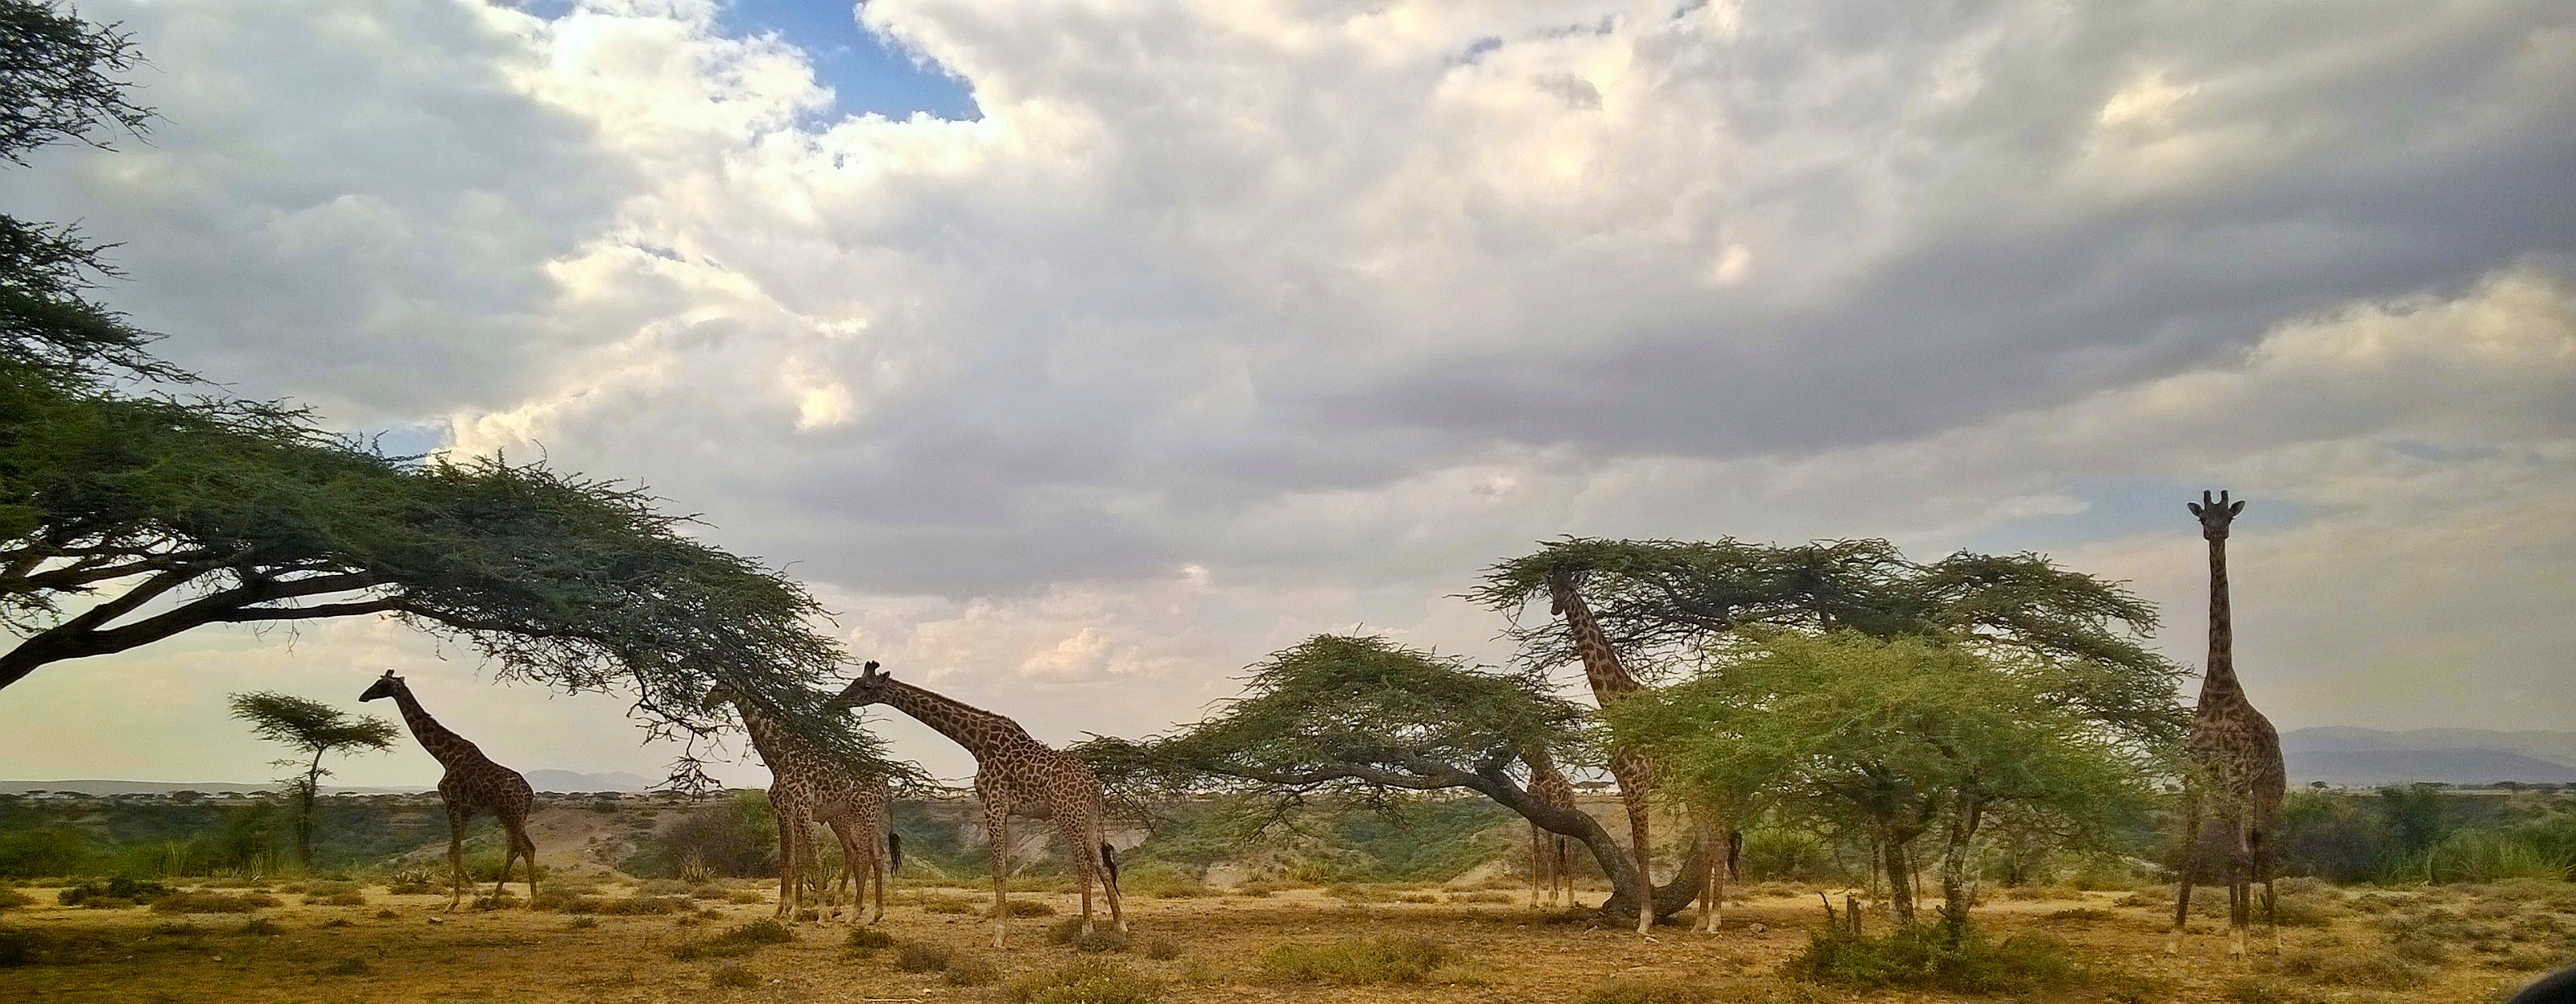 Six giraffes eating from acacia trees at the top of the gorge.